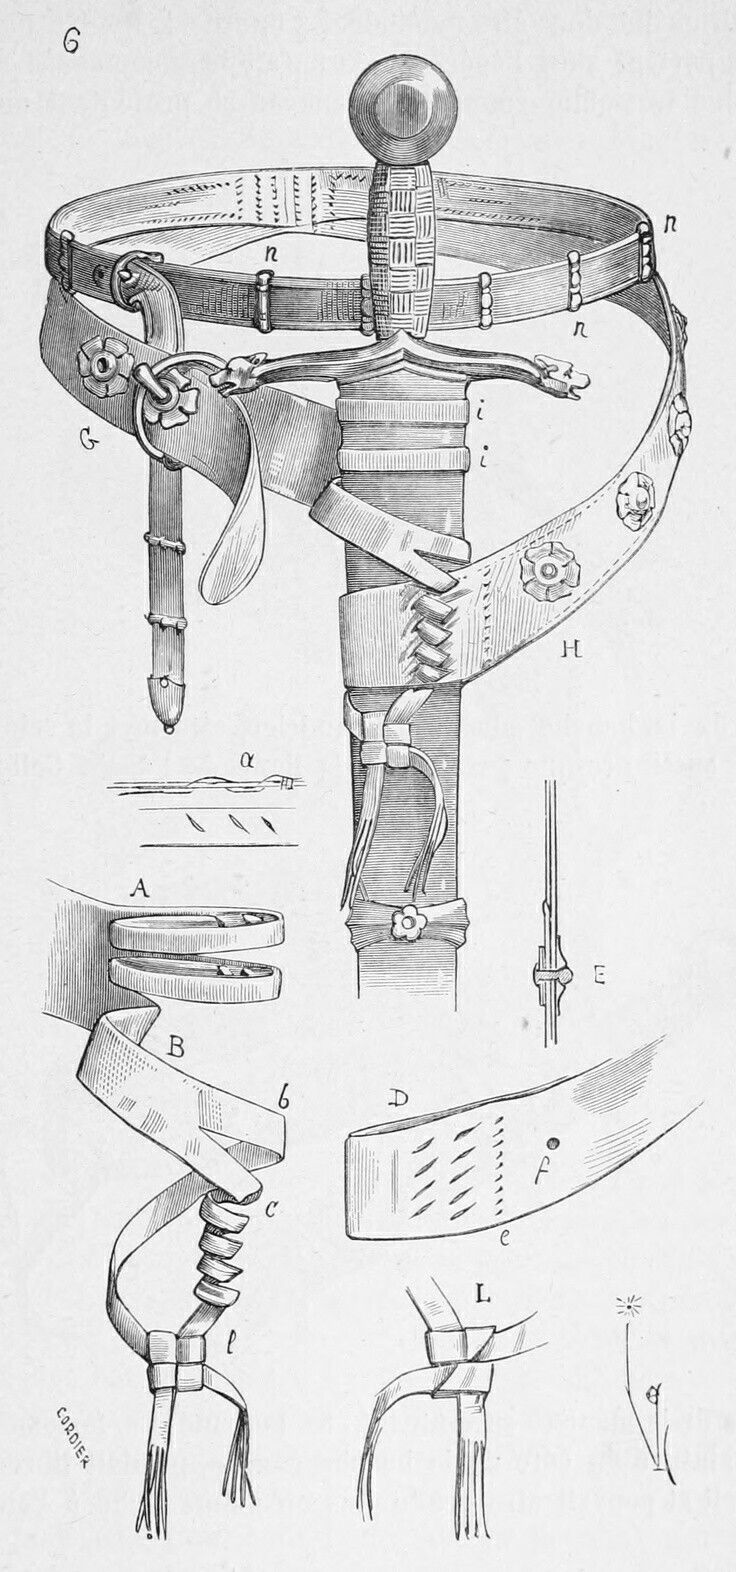 Pin by Ksianora on оружие | Pinterest | Weapons, Medieval and Knives